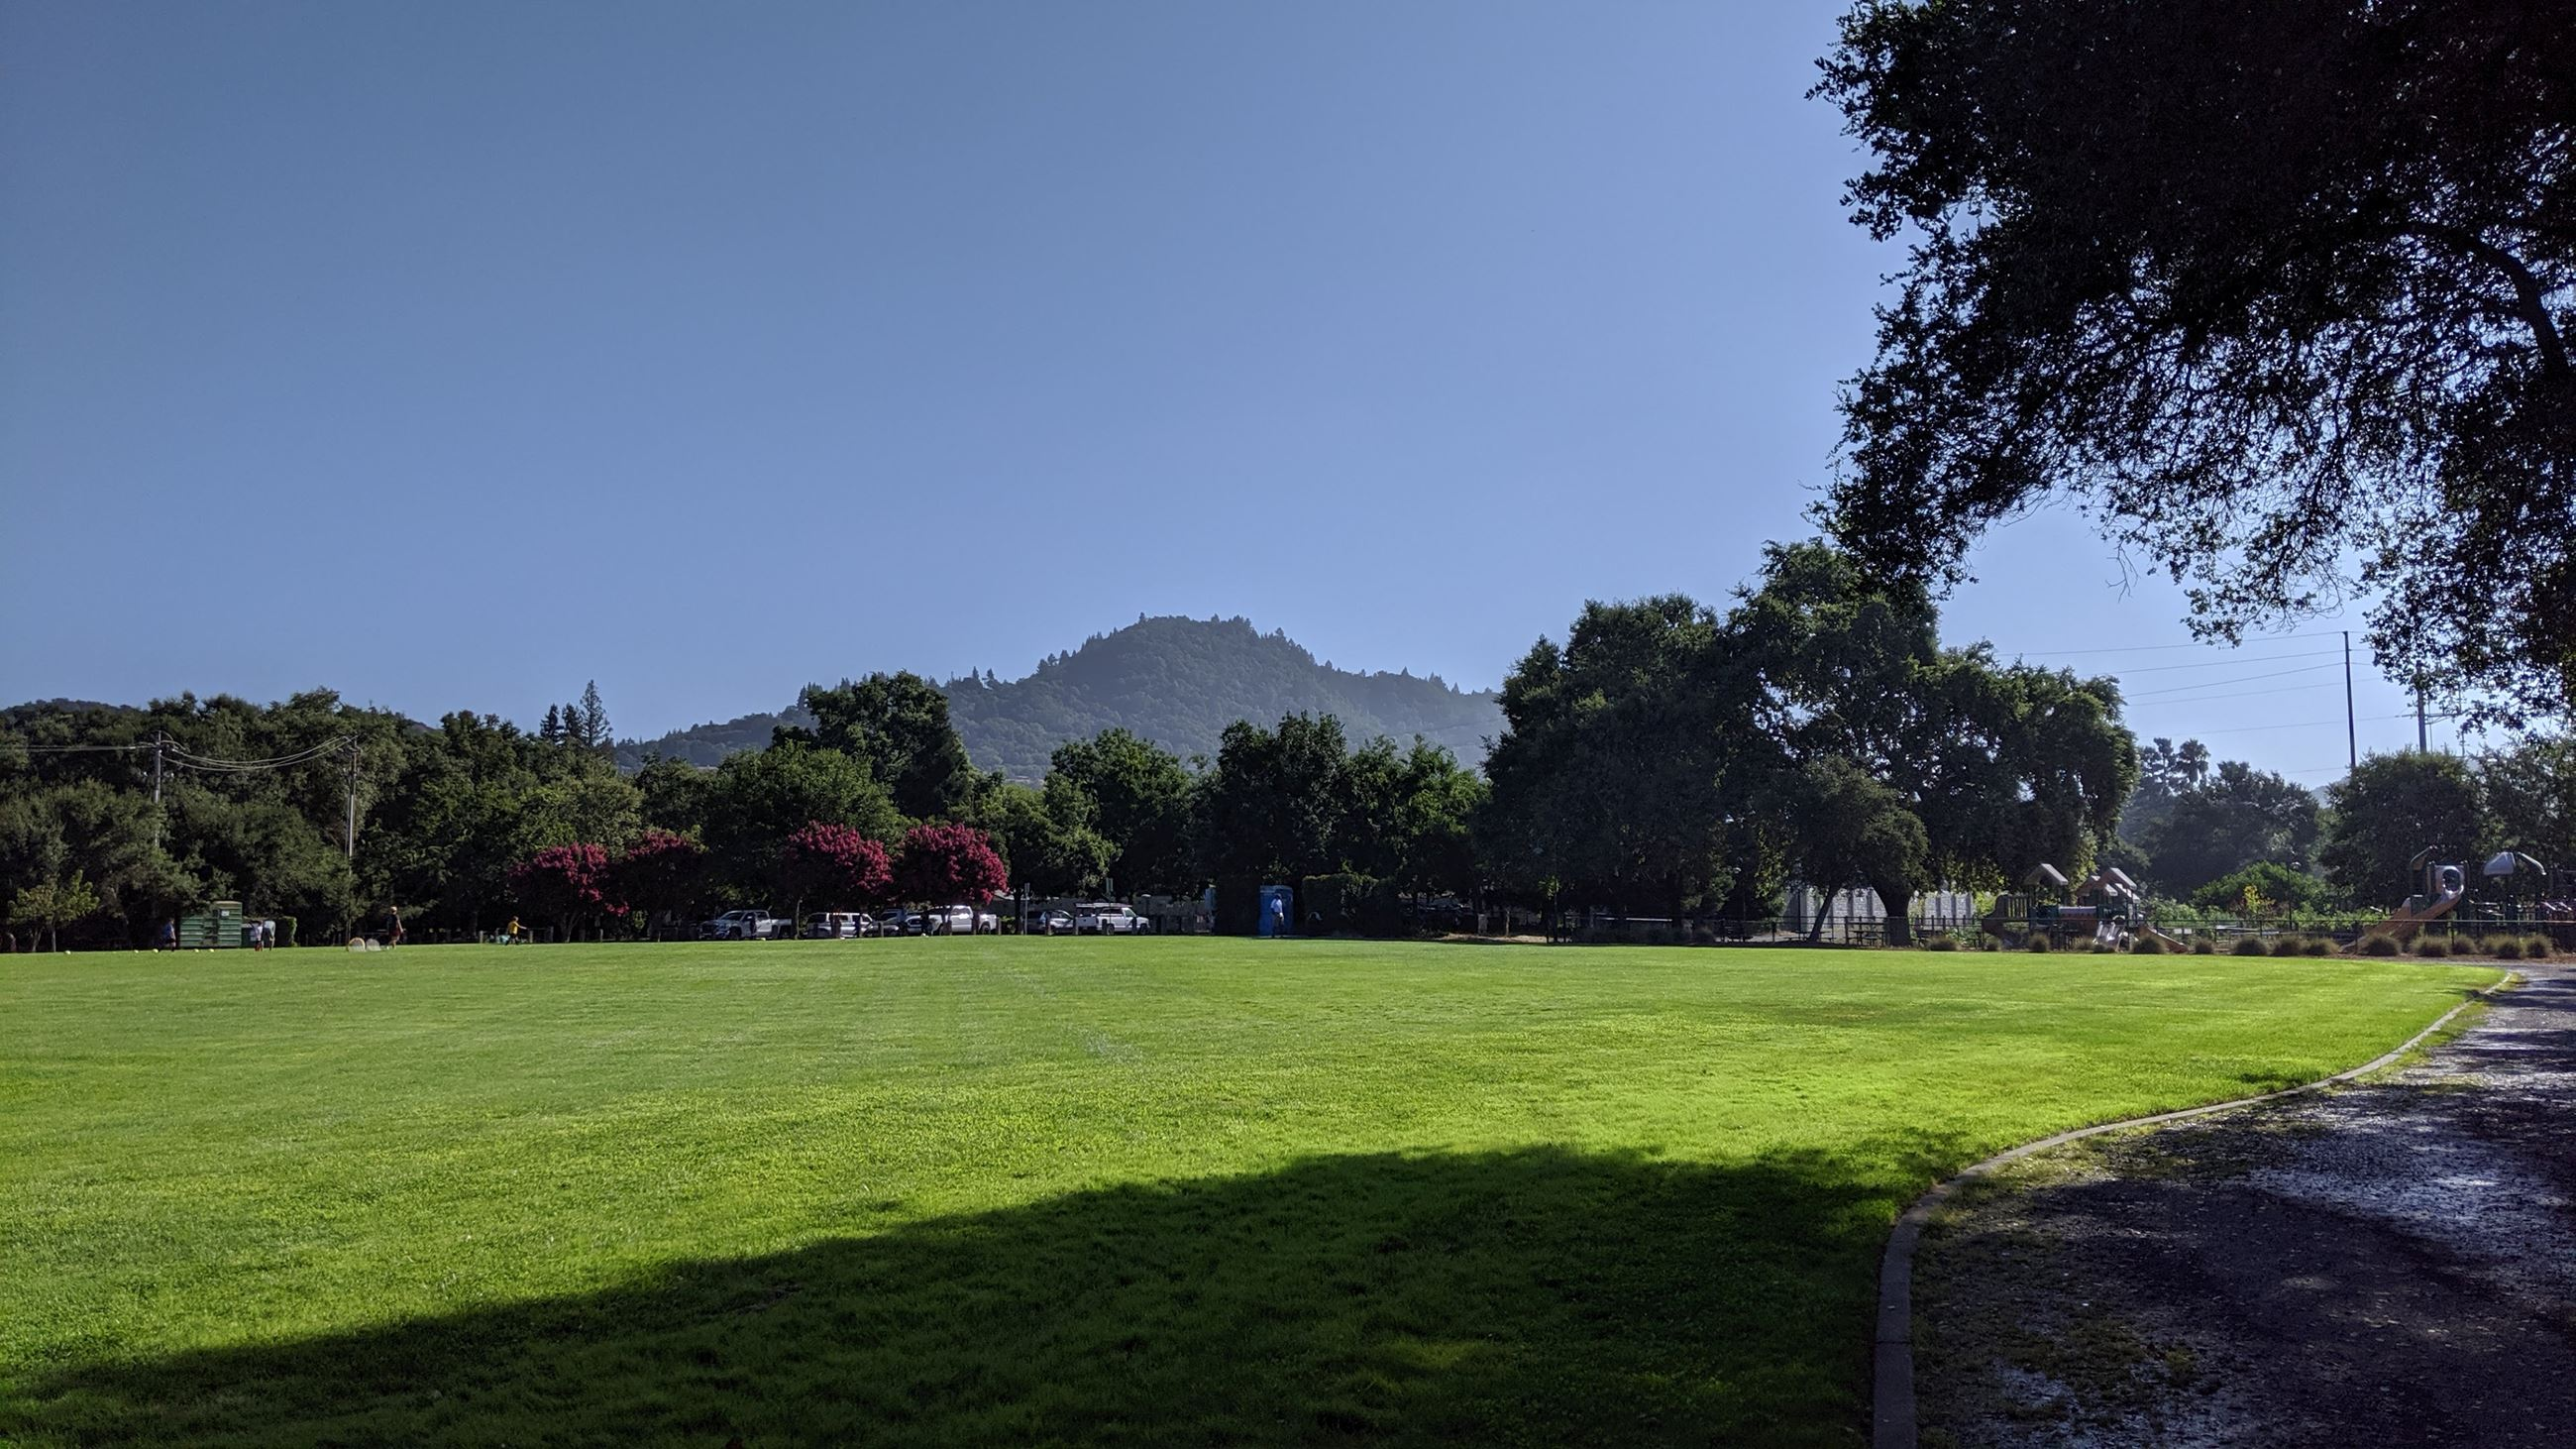 Badger Park with Fitch Mountain in background